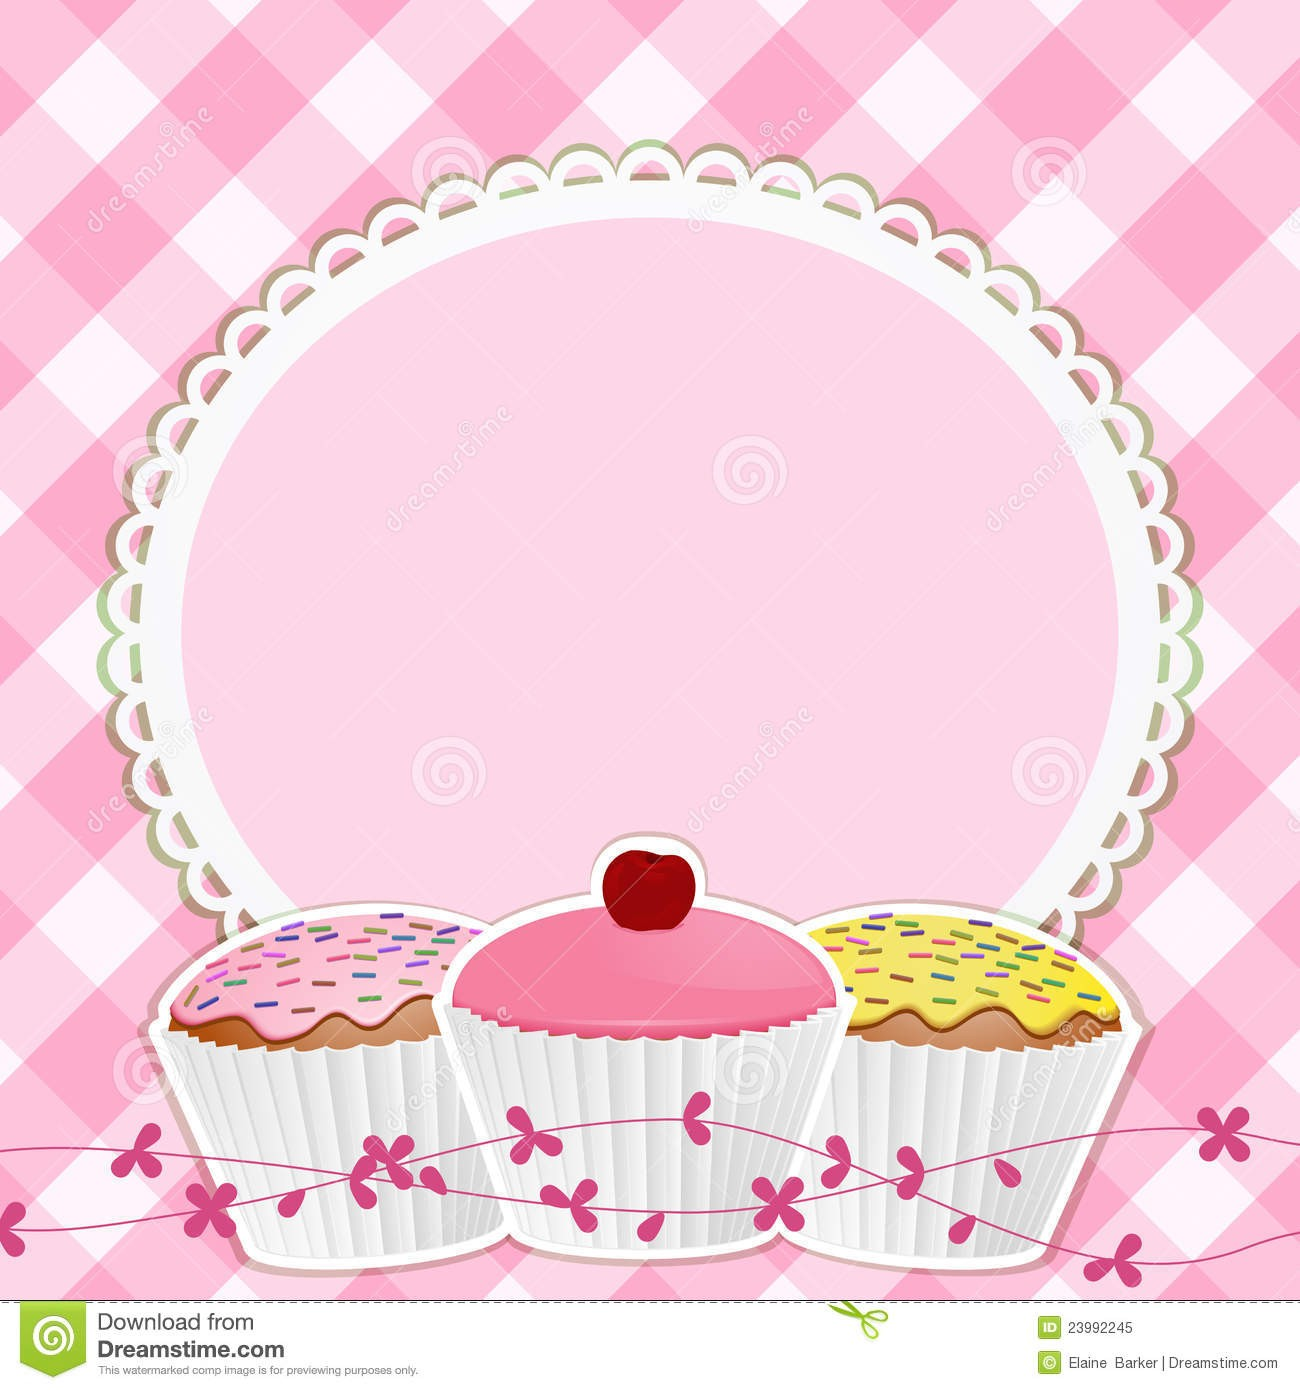 Cake Clipart Wallpaper : Cute Border Clipart - Cliparts.co